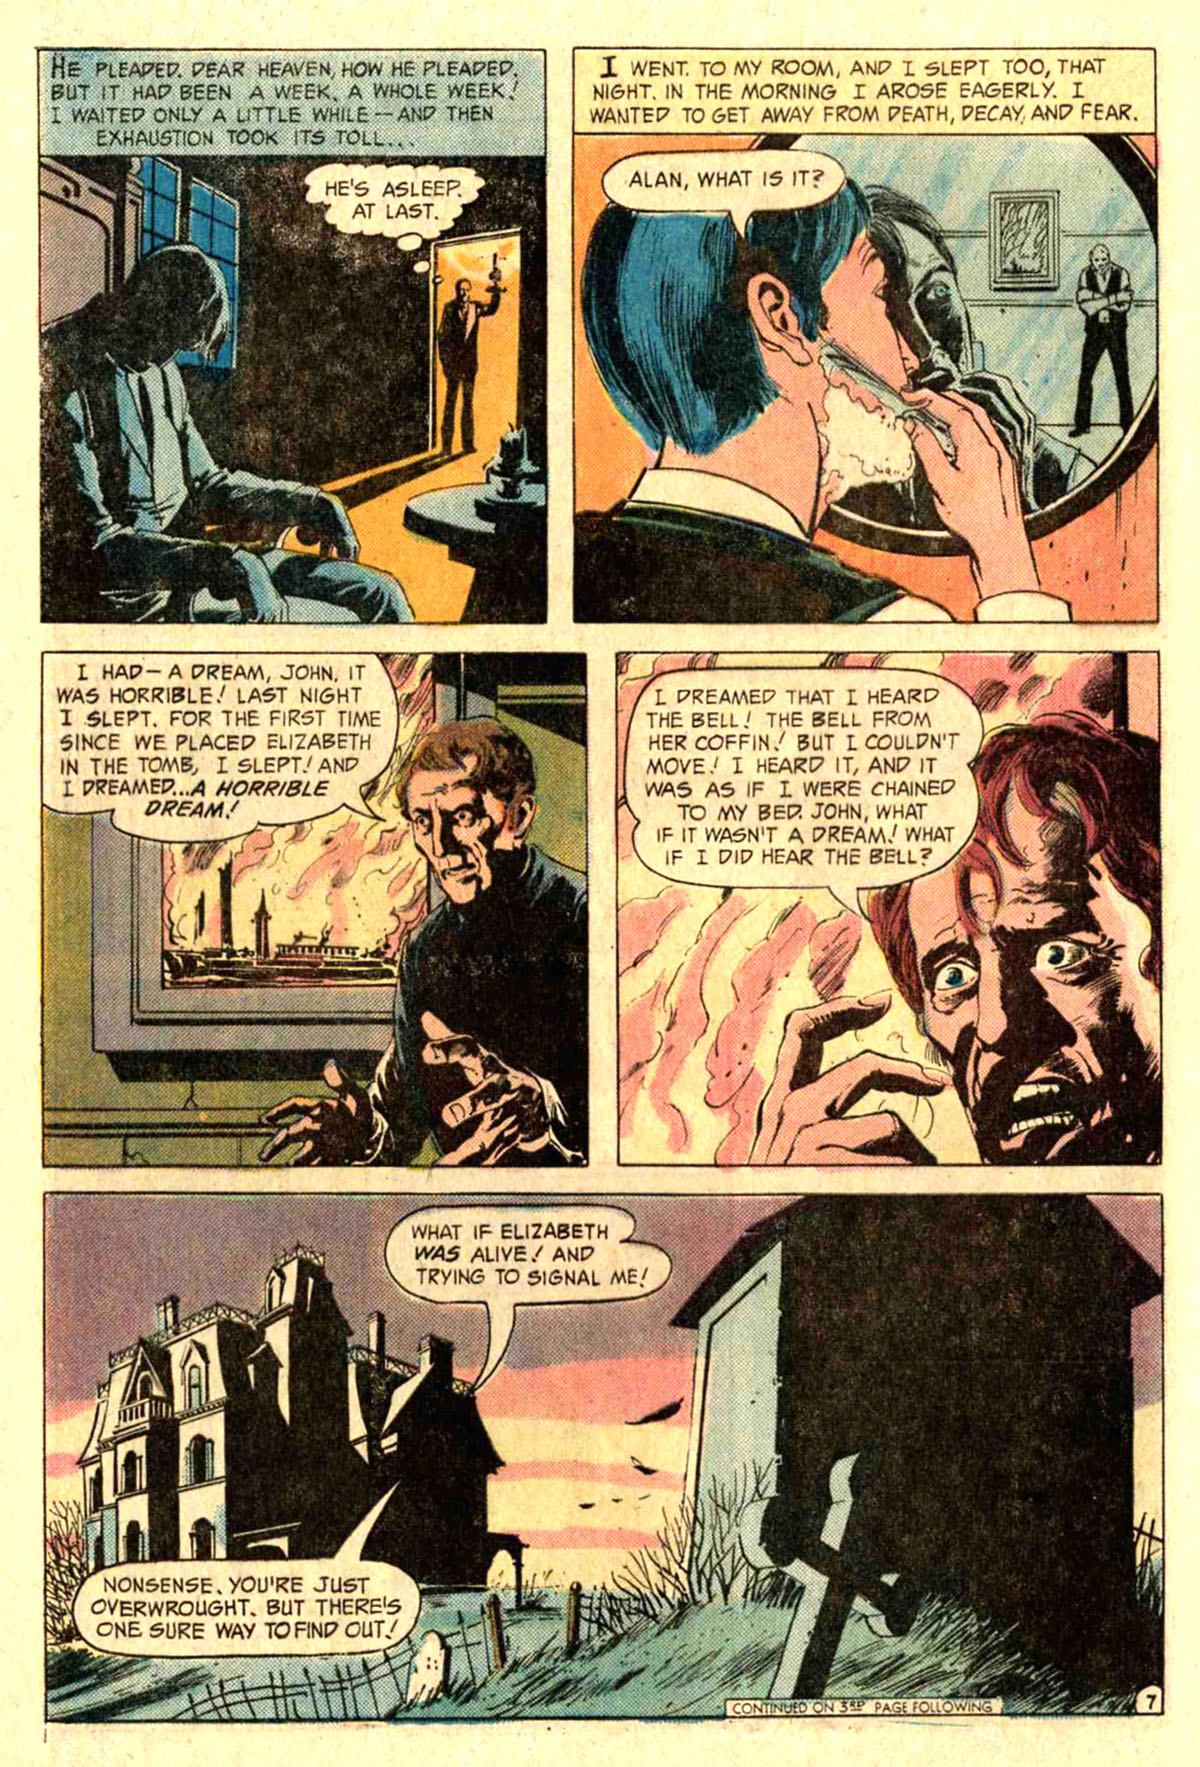 House of Mystery (1951) #236 pg26.